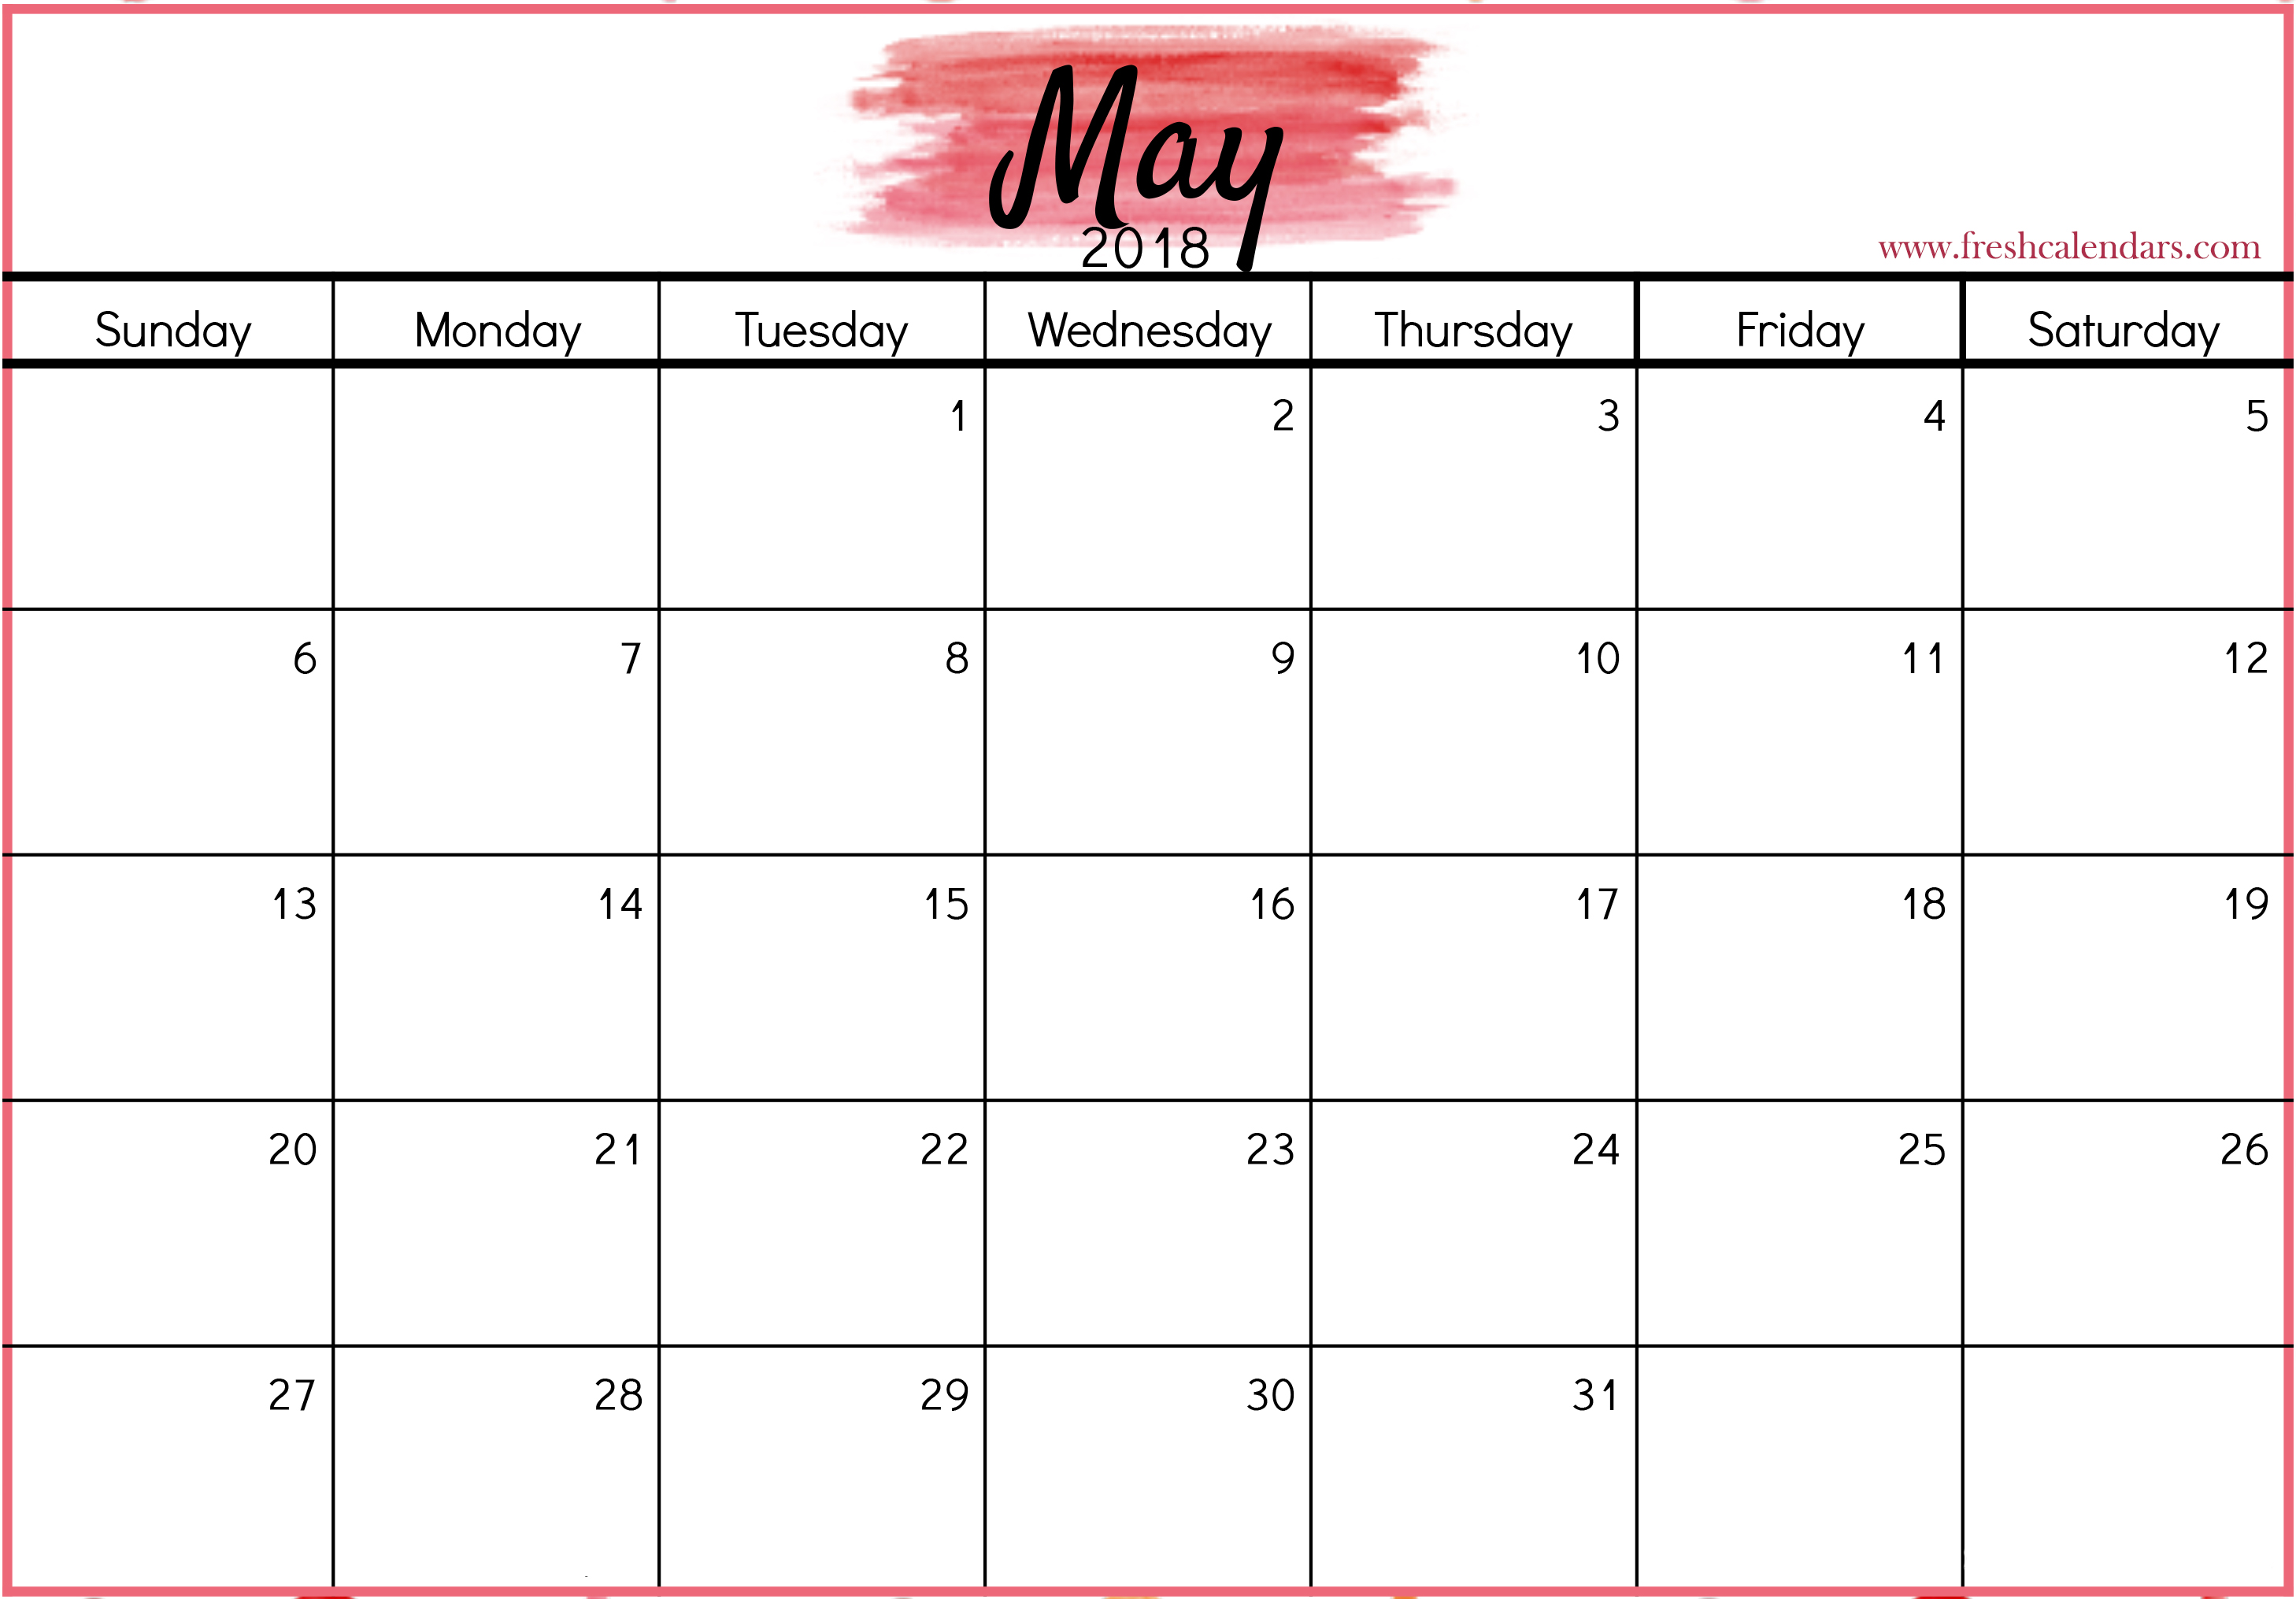 May 2018 Calendar Pink Color